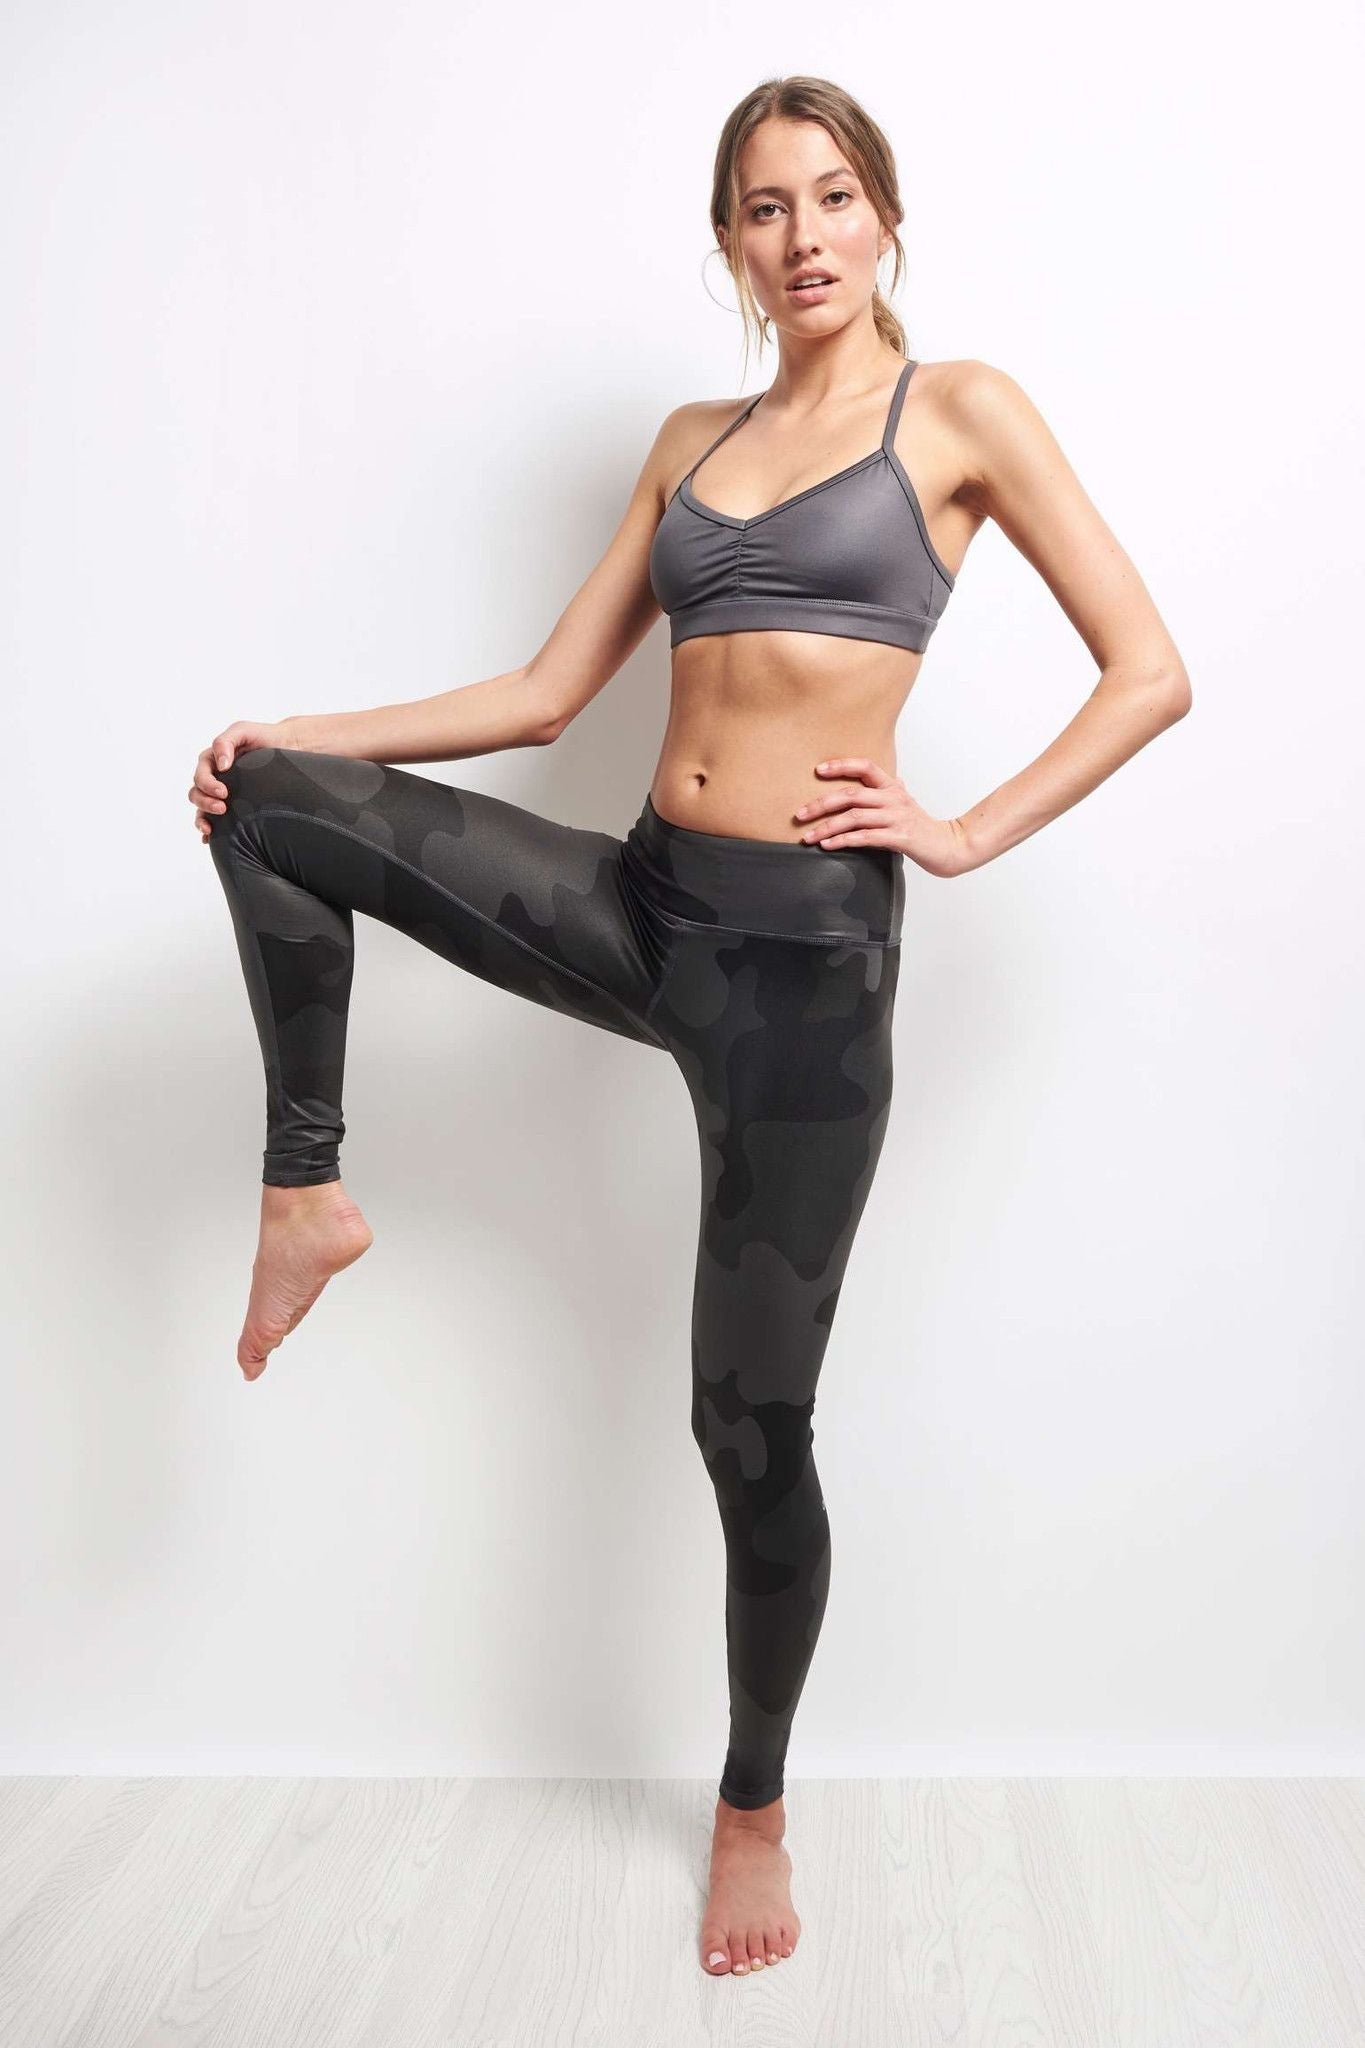 Alo Yoga Airbrush Legging - Black Camo image 1 - The Sports Edit